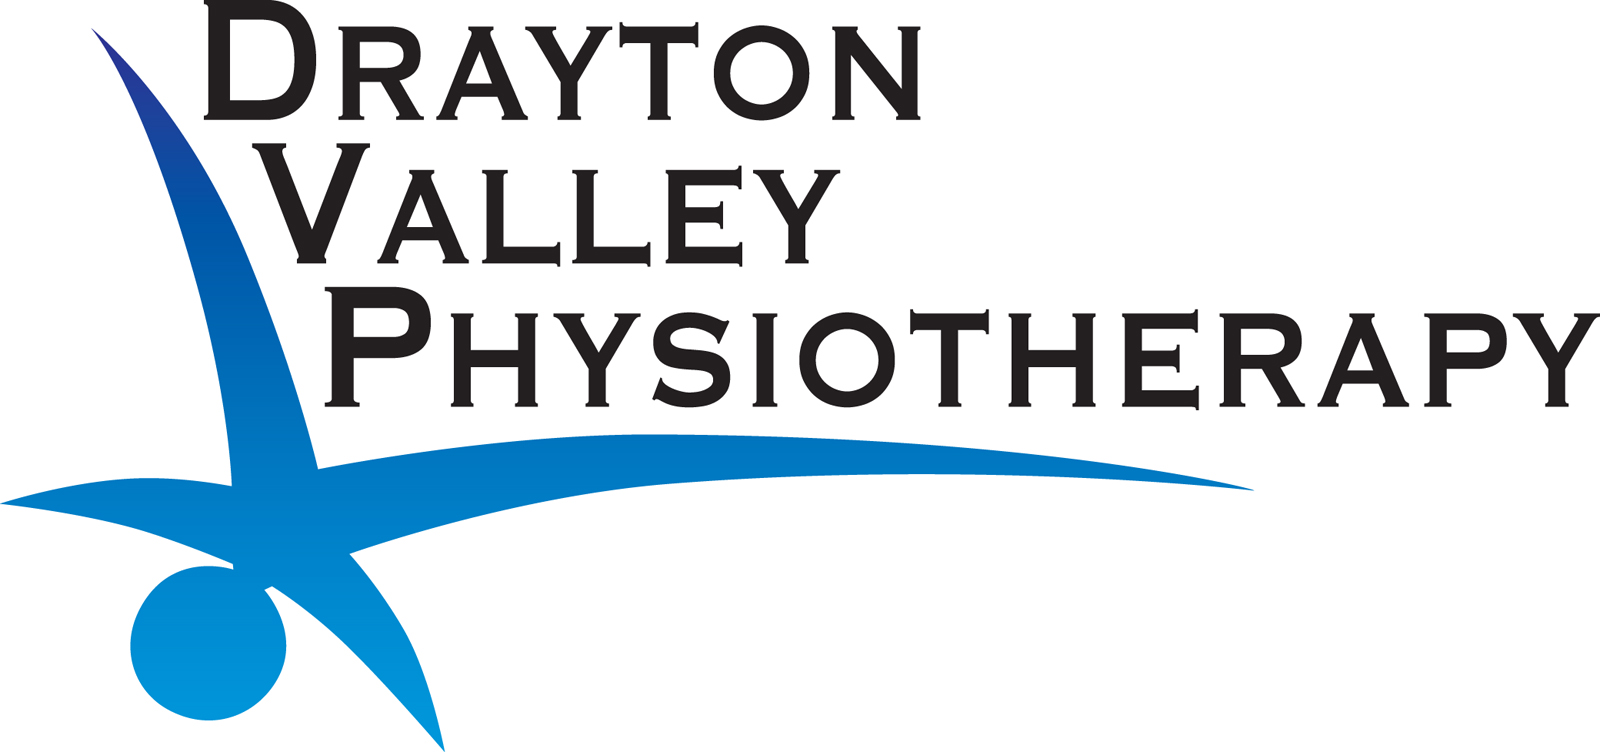 Drayton Valley Physiotherapy